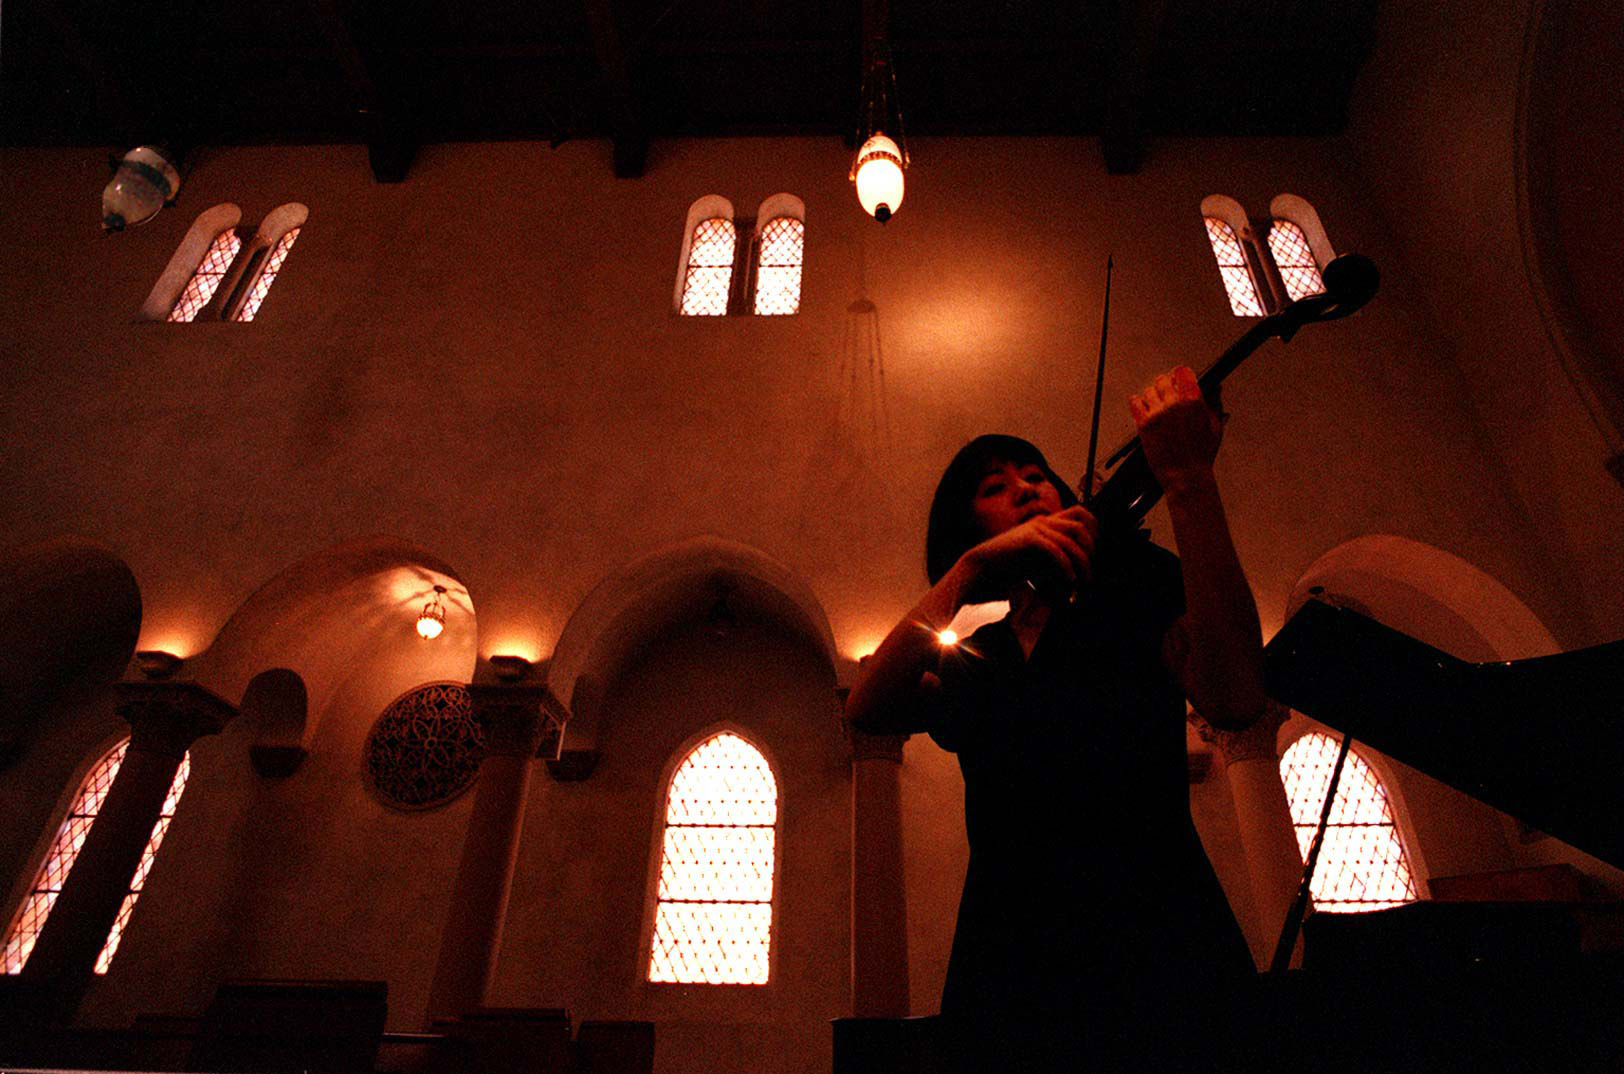 Violinist Linda Wang, currently working on a doctorate-level musical degree at USC, rehearses in the solace of the on-campus church, thursday morning at USC. STAFF PHOTO BY RICHARD HARTOG 9/5/96